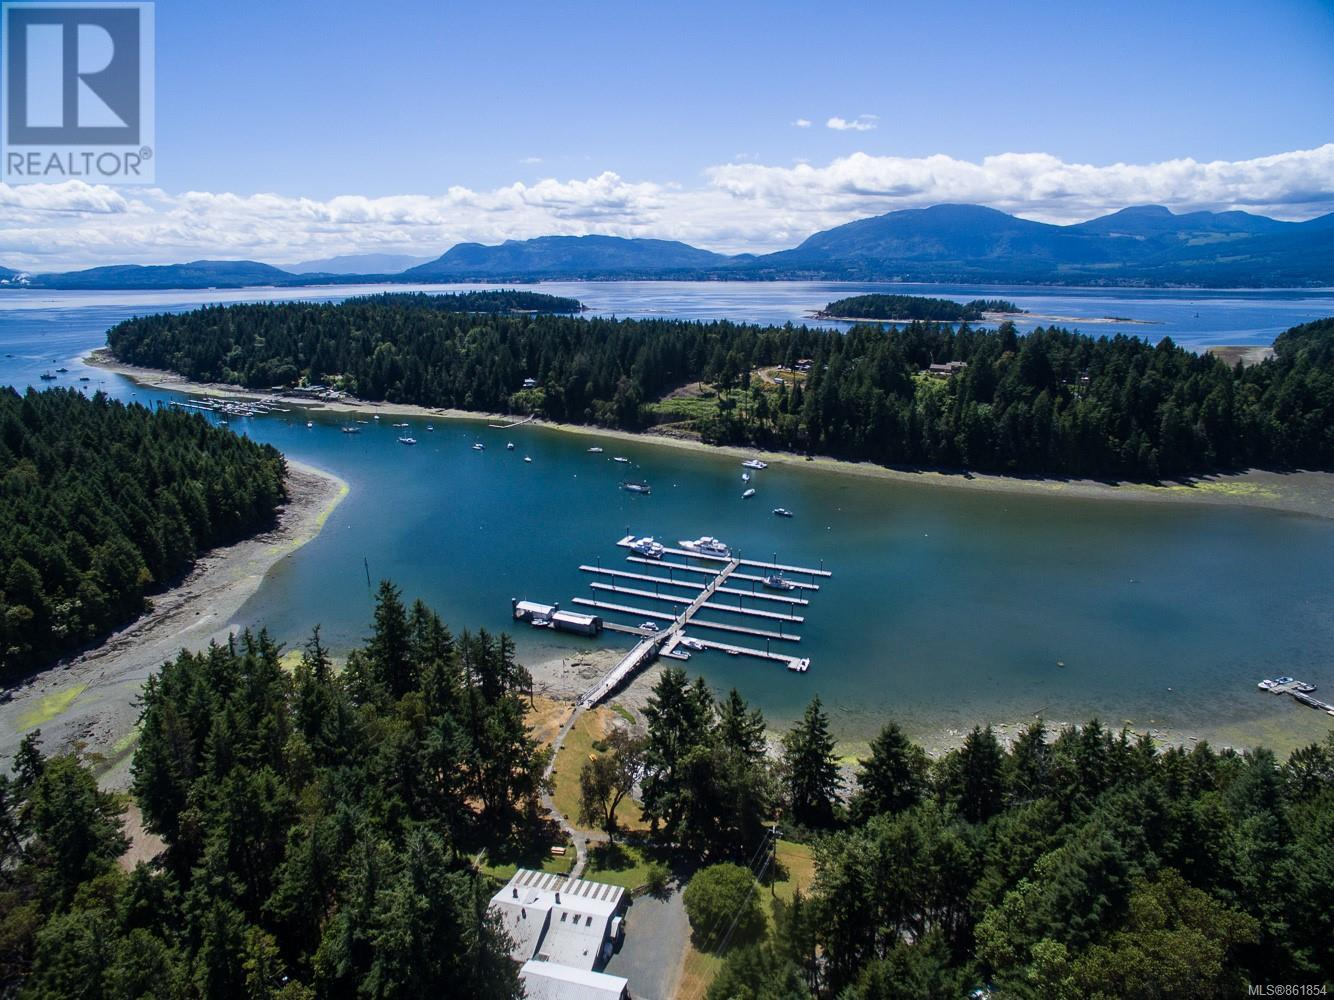 MLS® #861854 - Thetis Island Other For sale Image #1